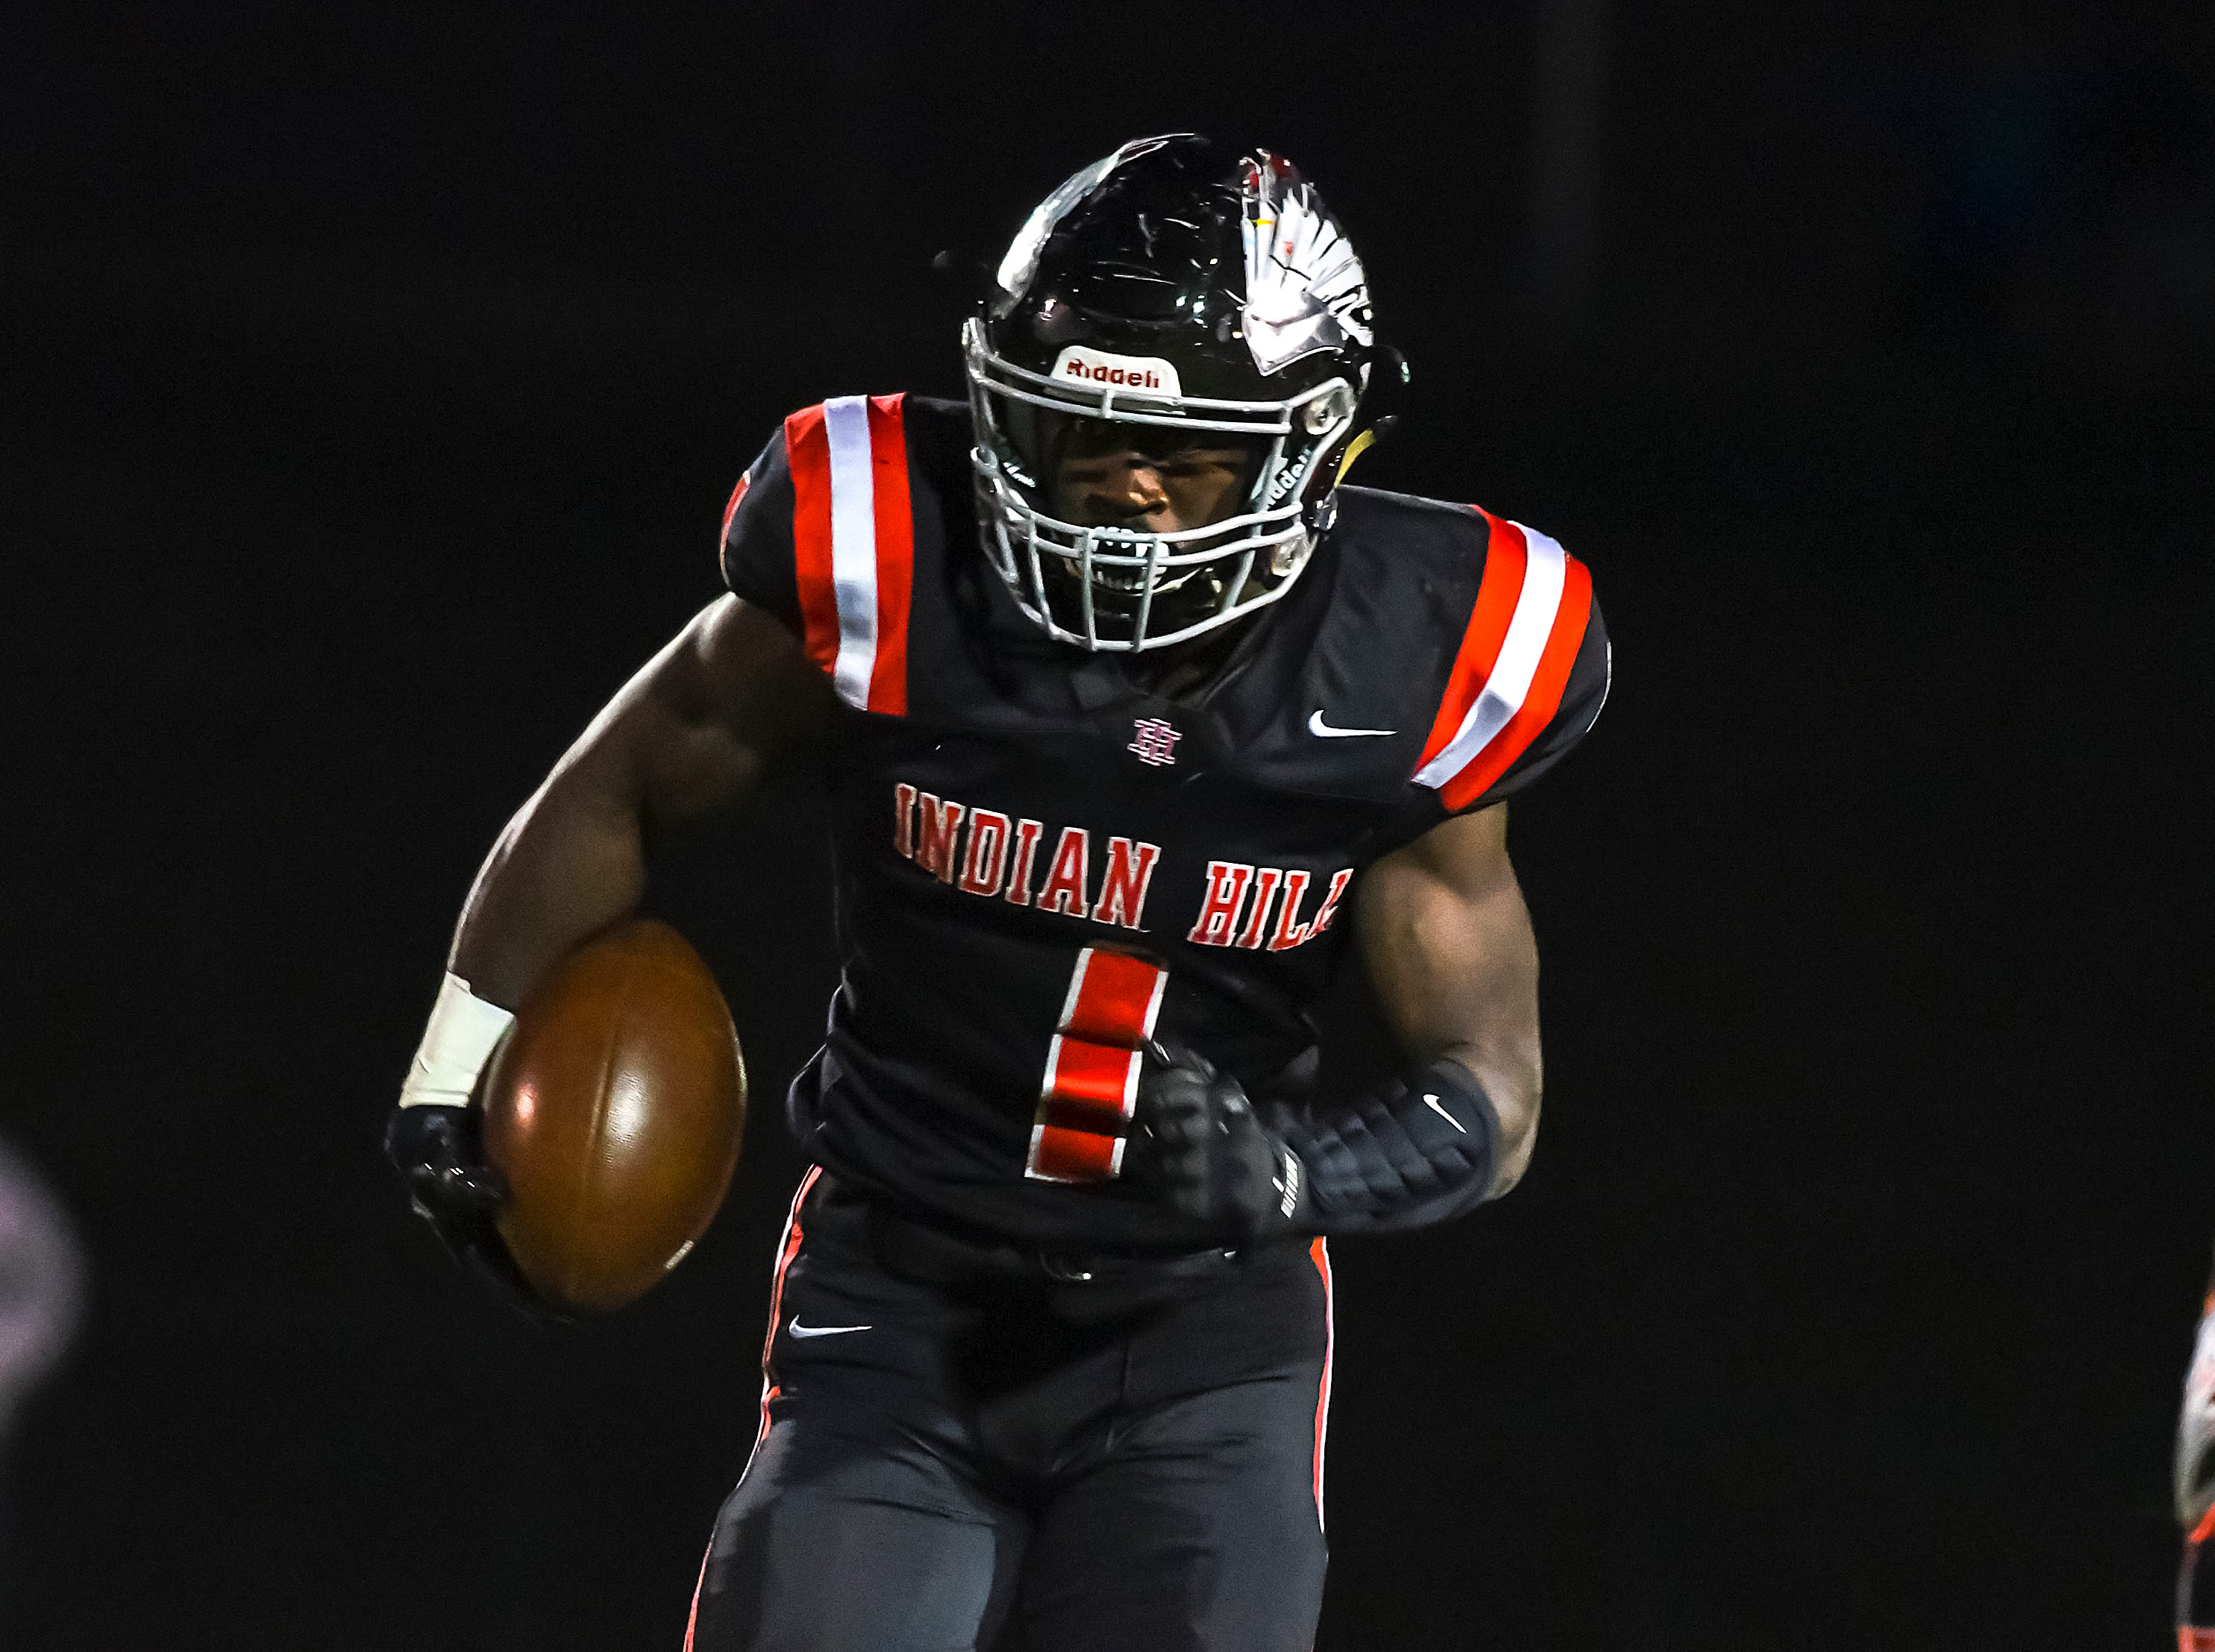 Dimetrious Baylor of Indian Hill runs the ball on the opening series of the game against Waverly in the OHSAA D4 Region 16 Playoffs at Indian Hill High School, Saturday, Nov. 3, 2018